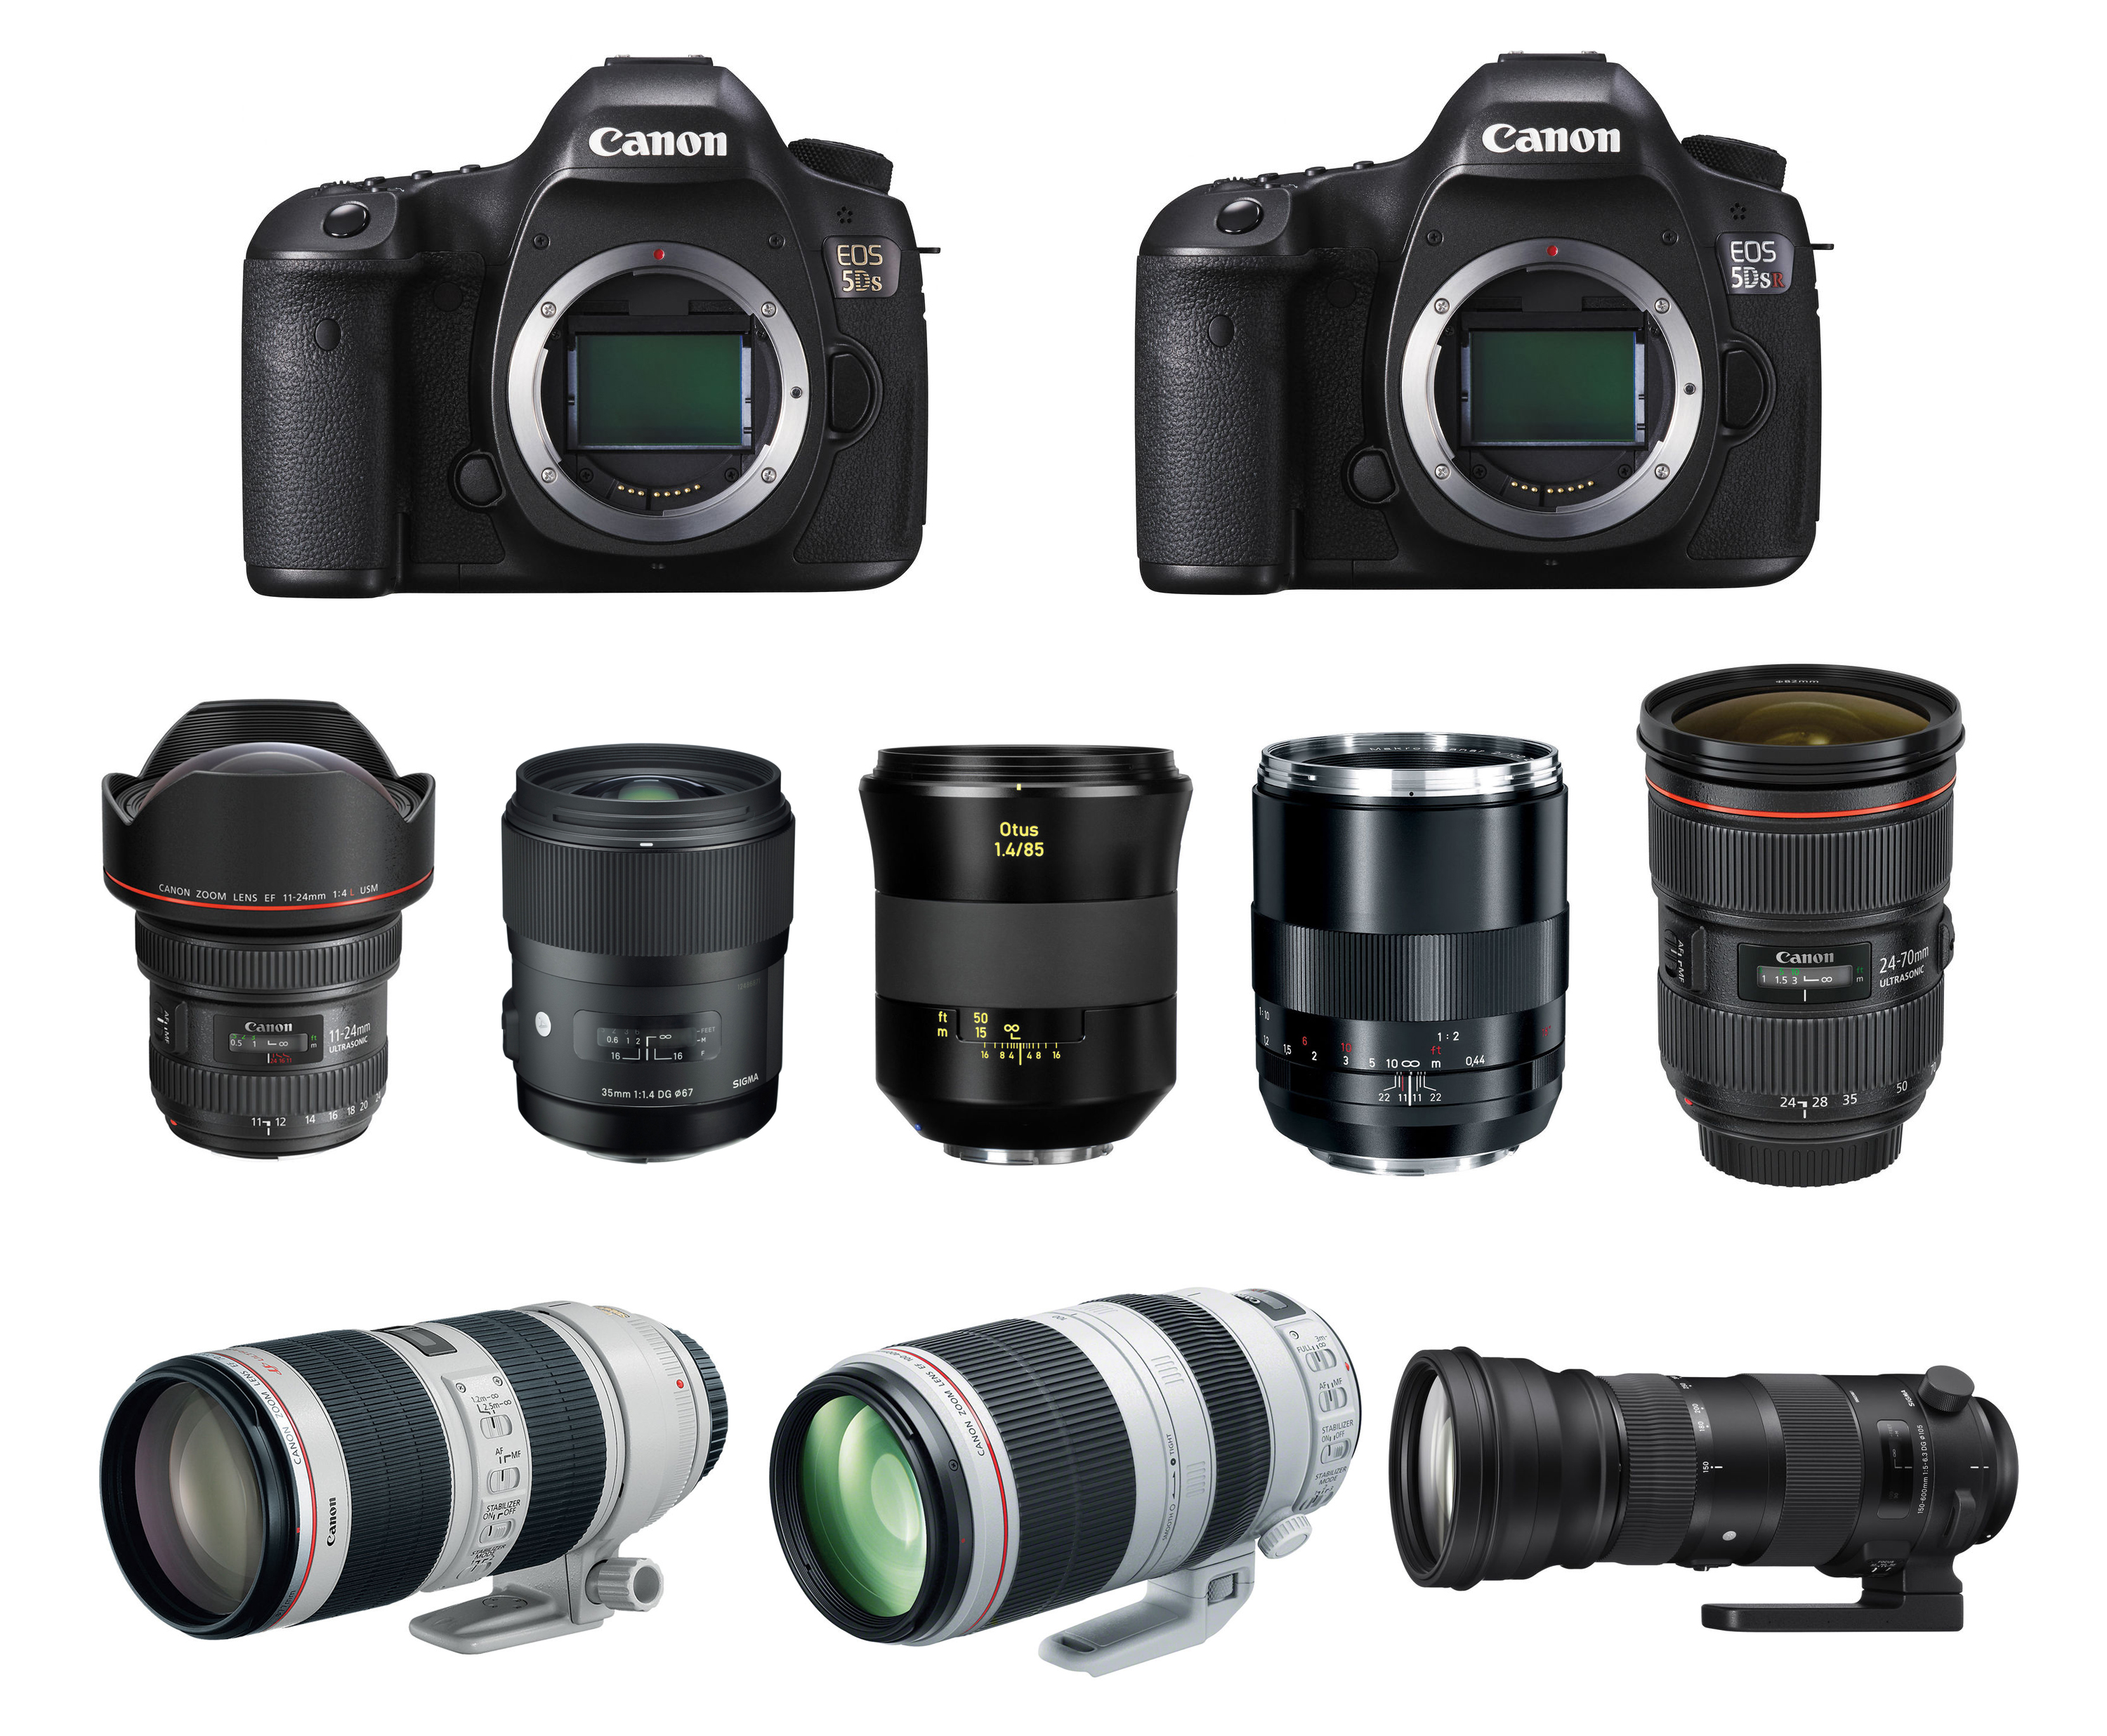 Best Lenses for Canon EOS 5Ds & 5Ds R | Camera News at Cameraegg